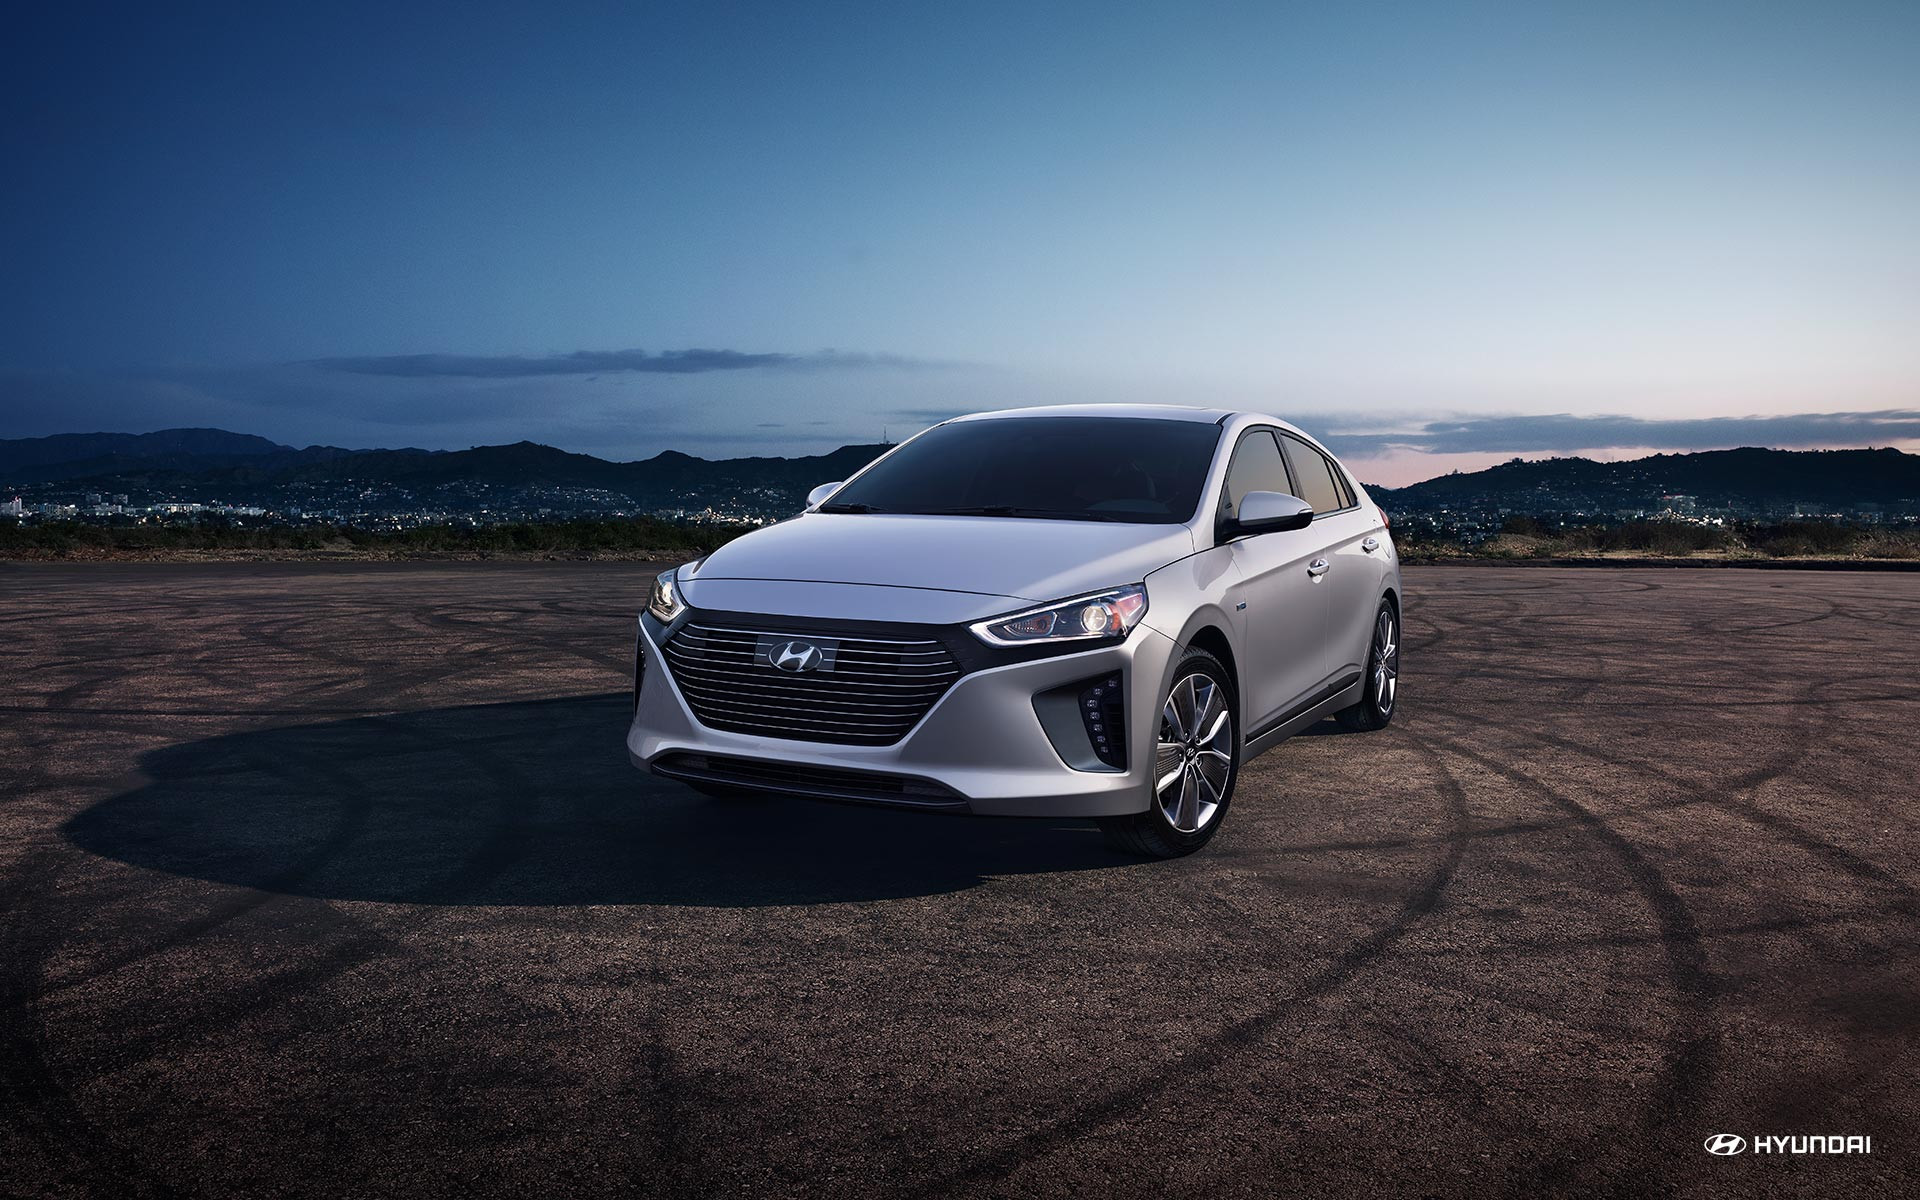 Used Cars Baltimore Luxury Used Cars for Sale In Baltimore Md Inspirational New 2018 Hyundai